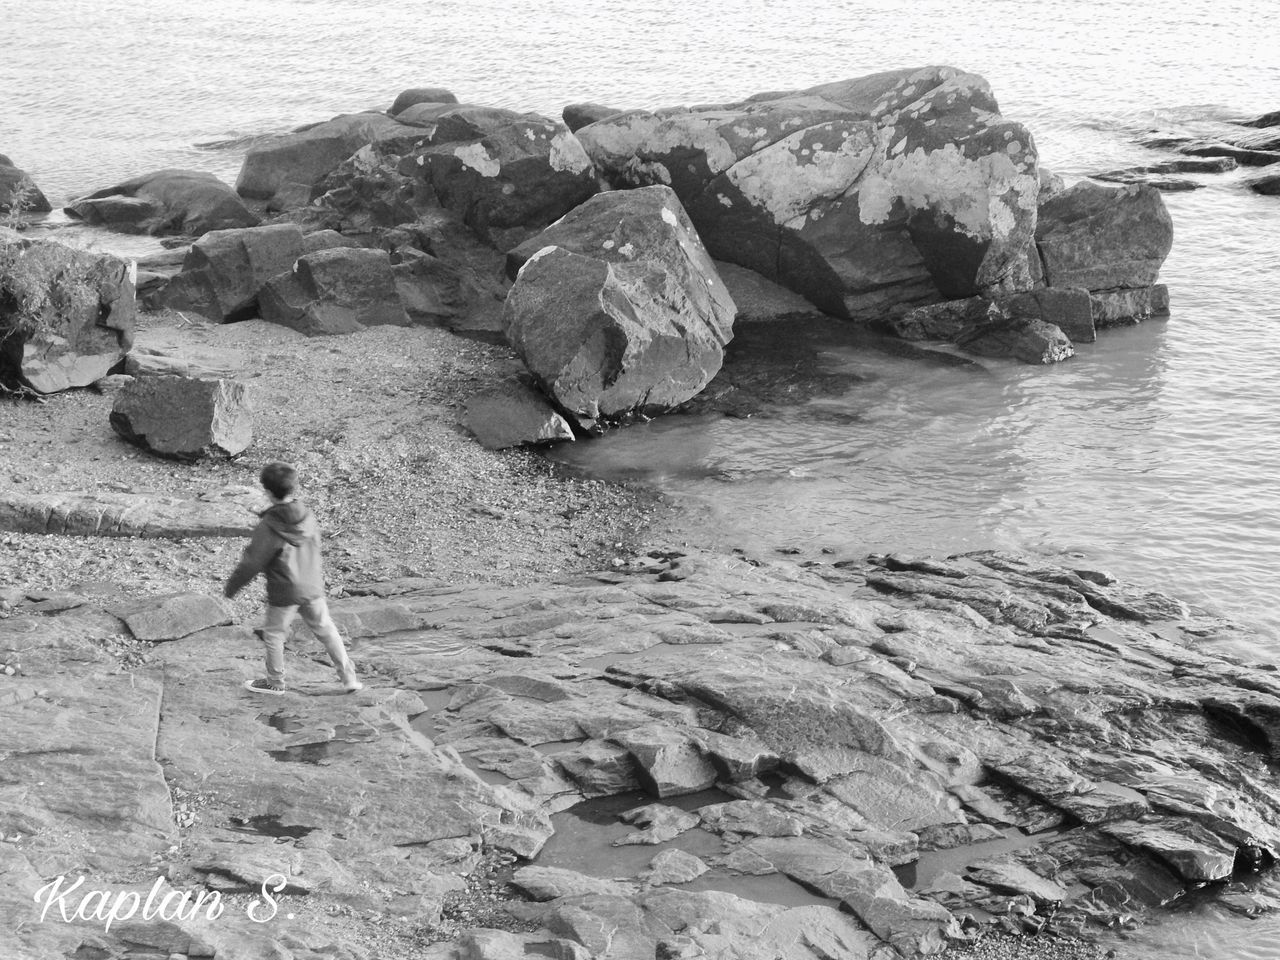 inocence 1 BW Beach Beauty In Nature Check This Out Child Children Day Full Length Inocence  Kids Kidsphotography Move Movement Movement Photography Nature One Person Outdoors Photography Rock - Object Rocks Running Sand Sea Vacations View Water